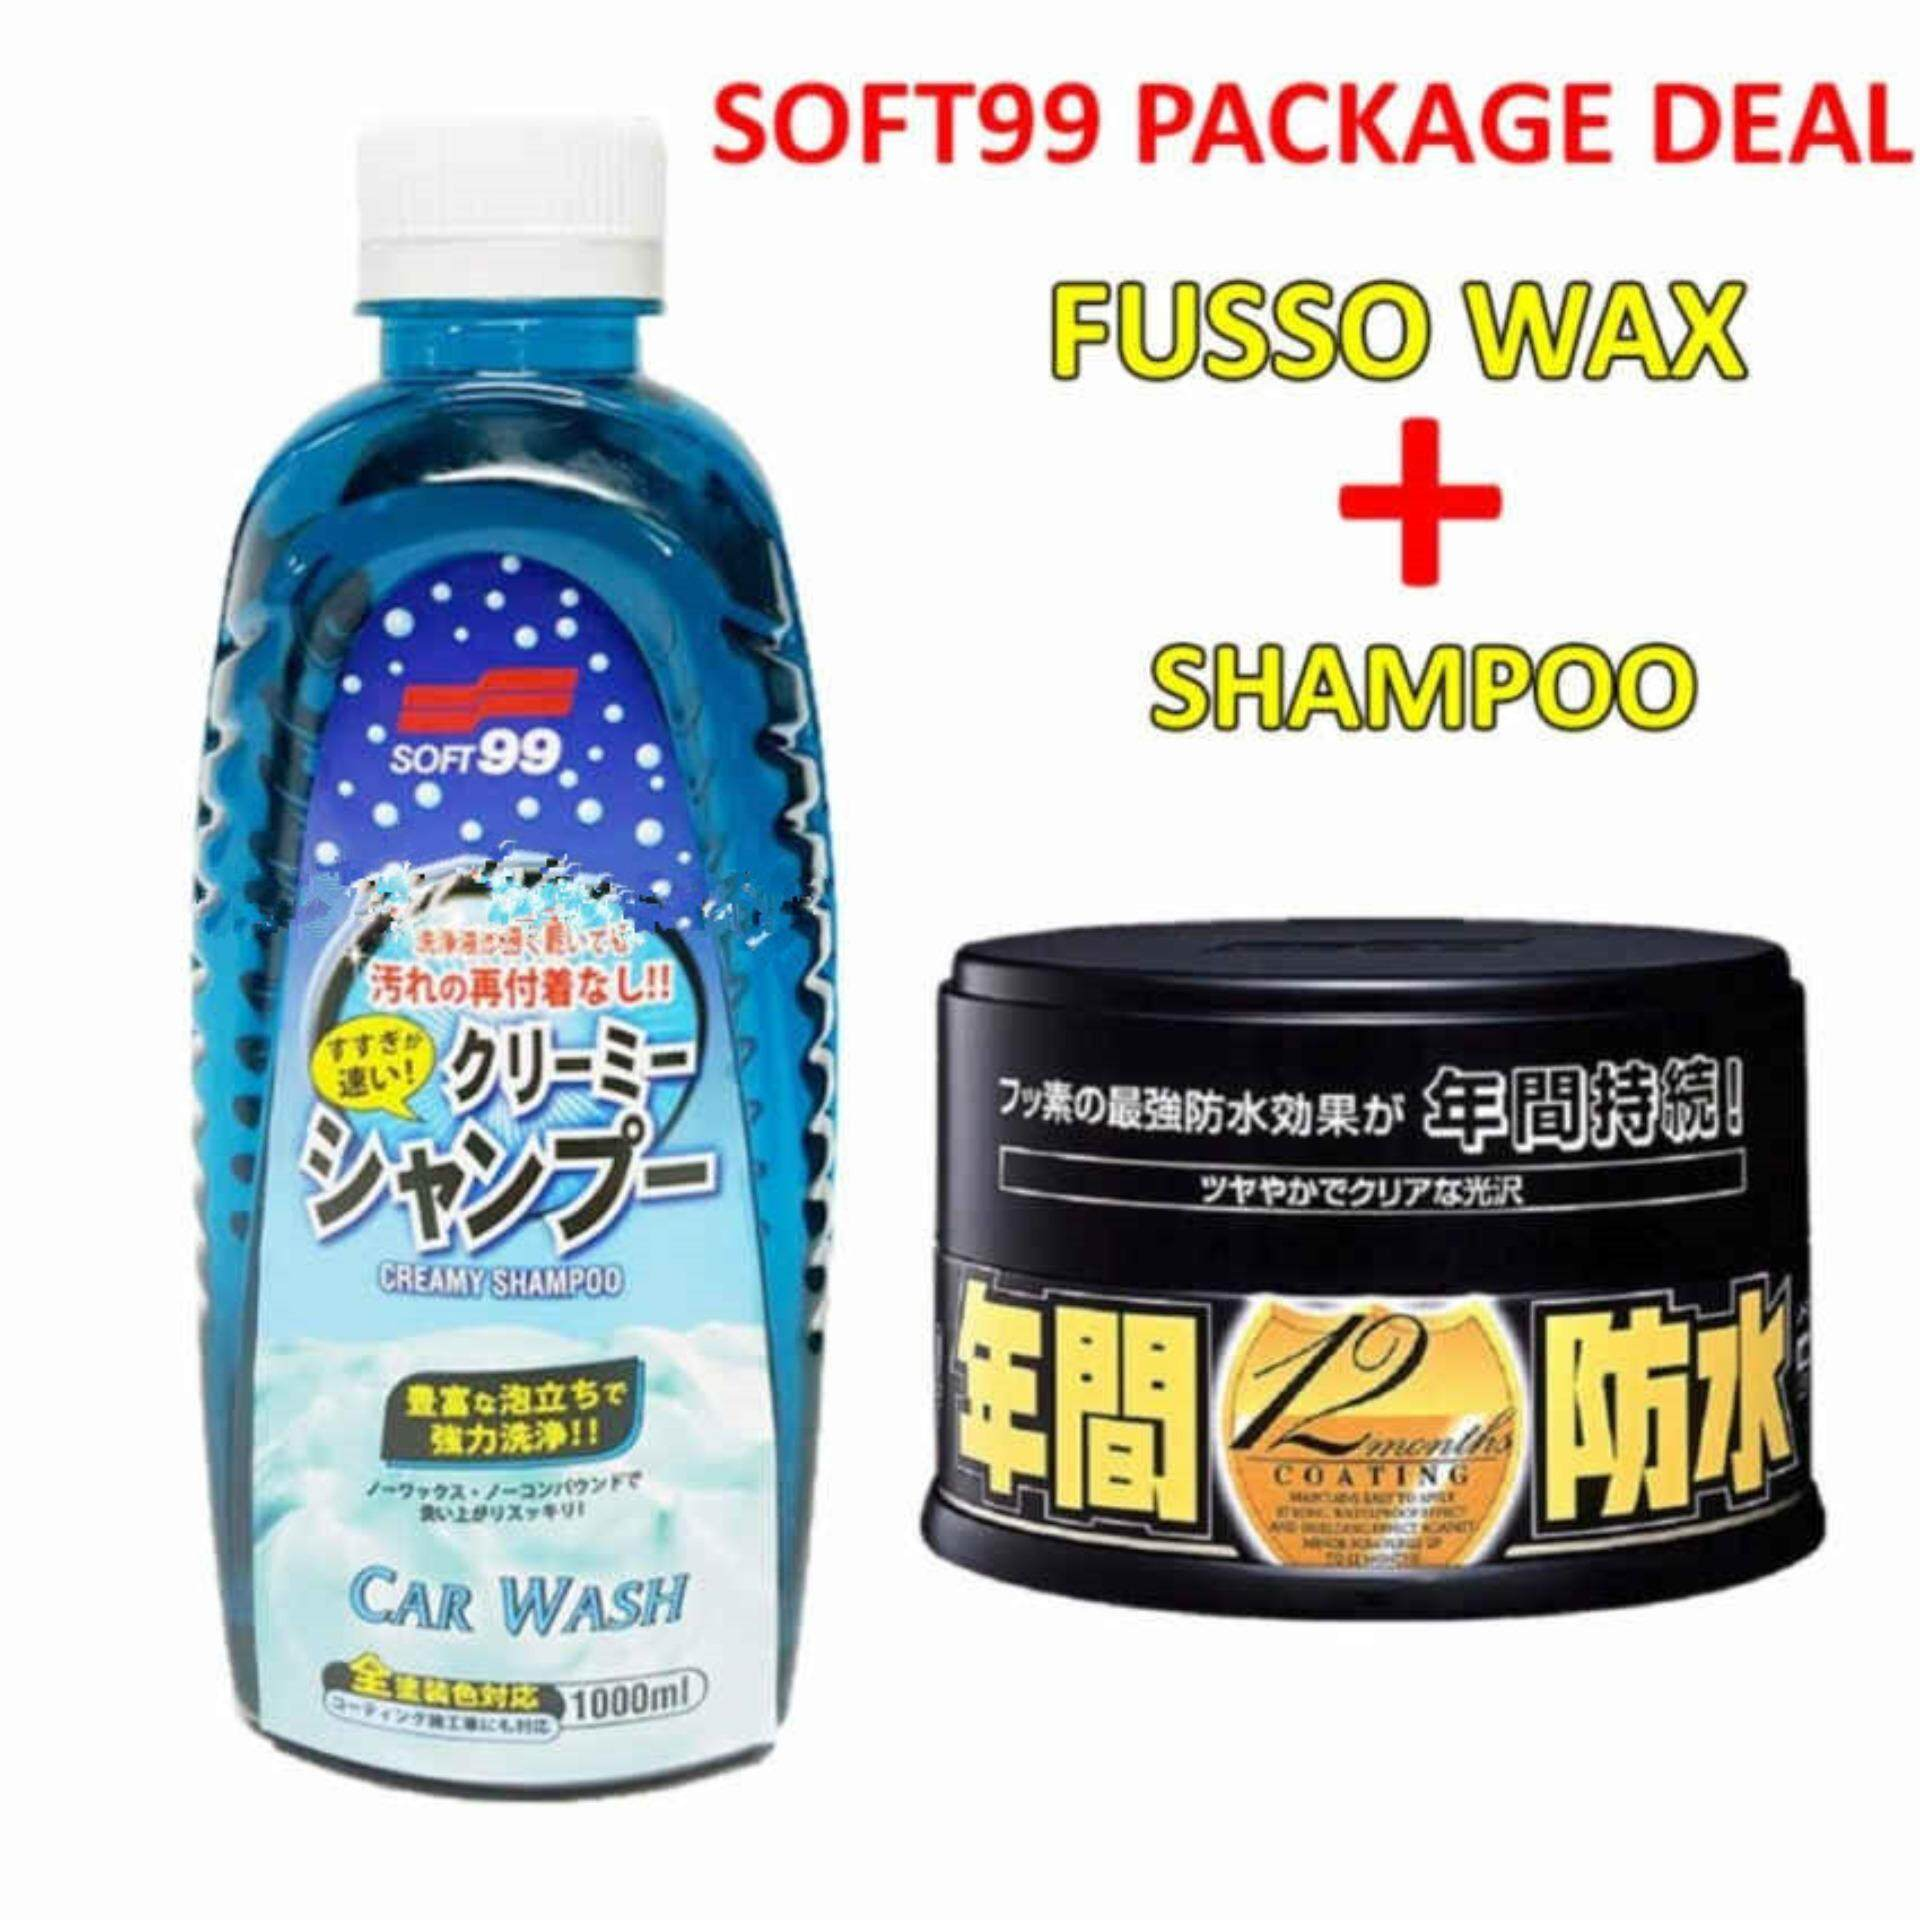 [PACKAGE DEAL] Soft 99 Fusso Coat Dark Color Wax + Car Wash Creamy Shampoo (1000ML)